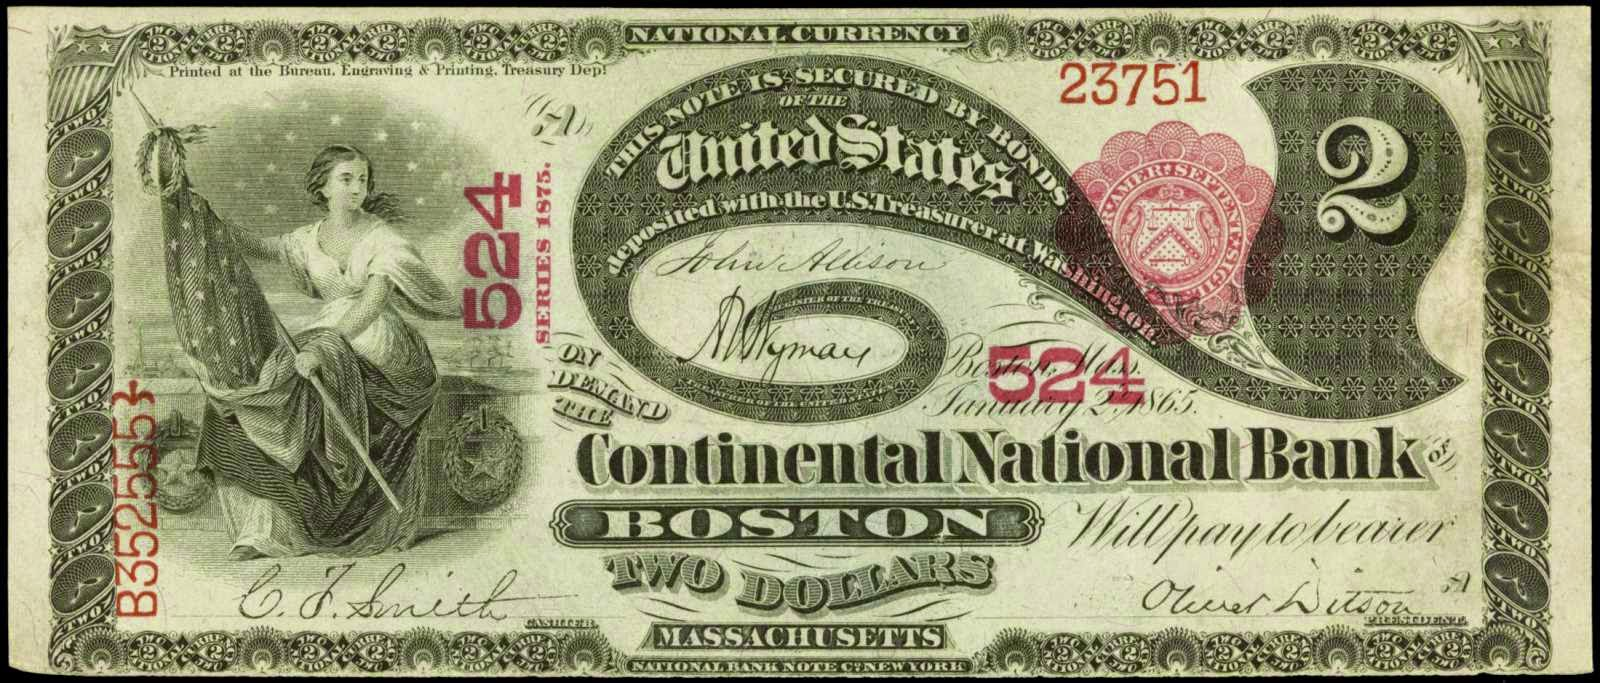 2 Dollar bill National Currency 1875 Lazy Deuces